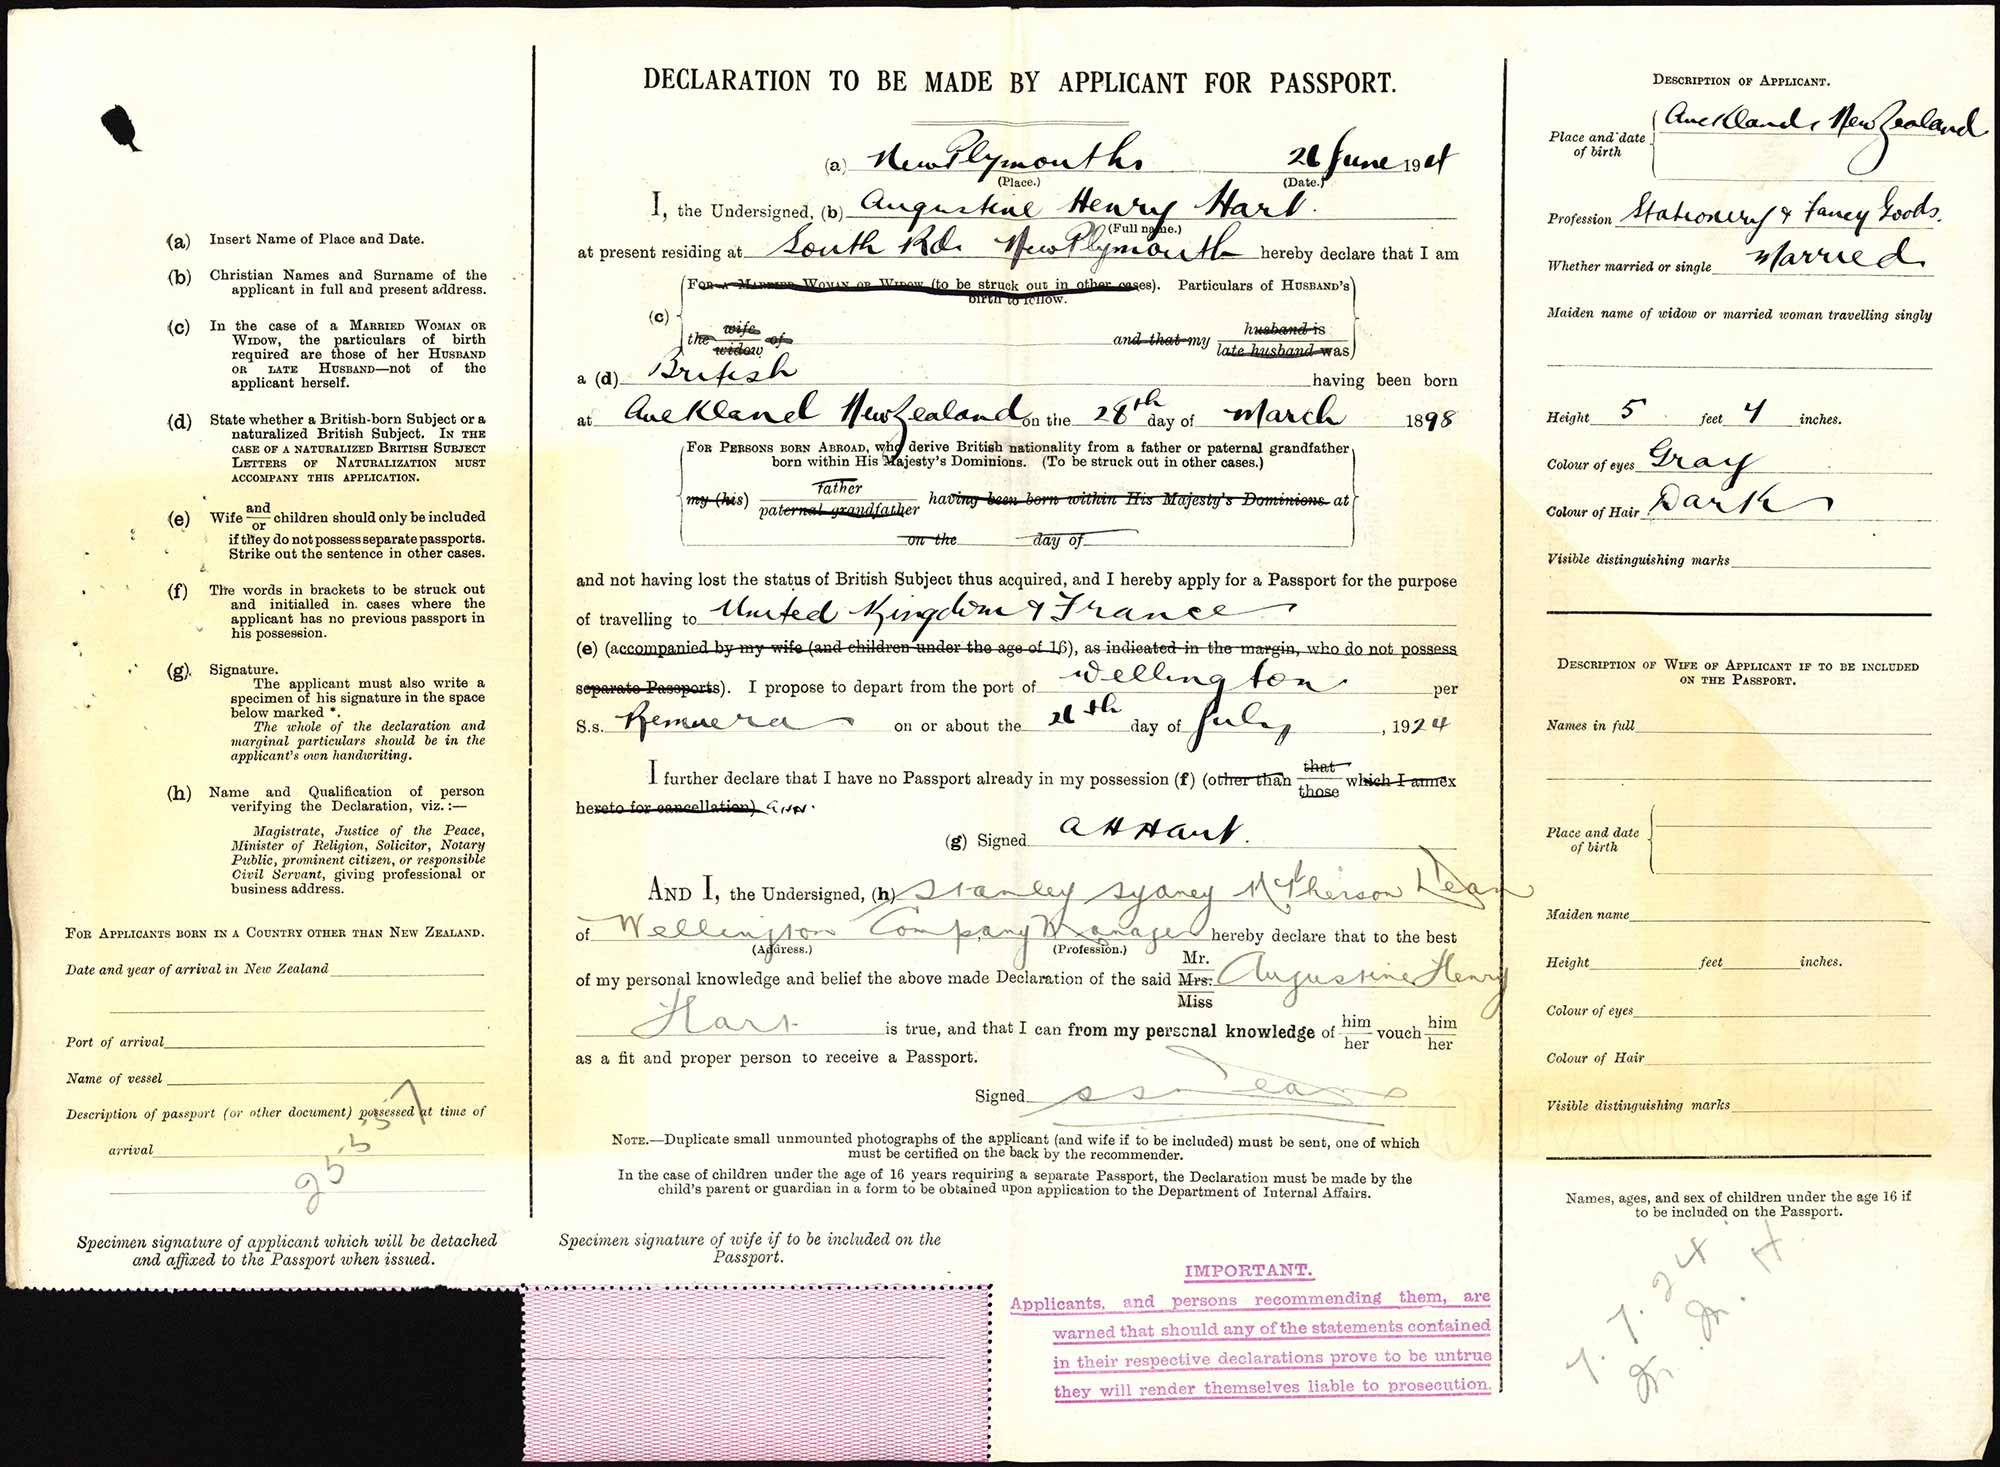 Augustine Henry Hart passport application